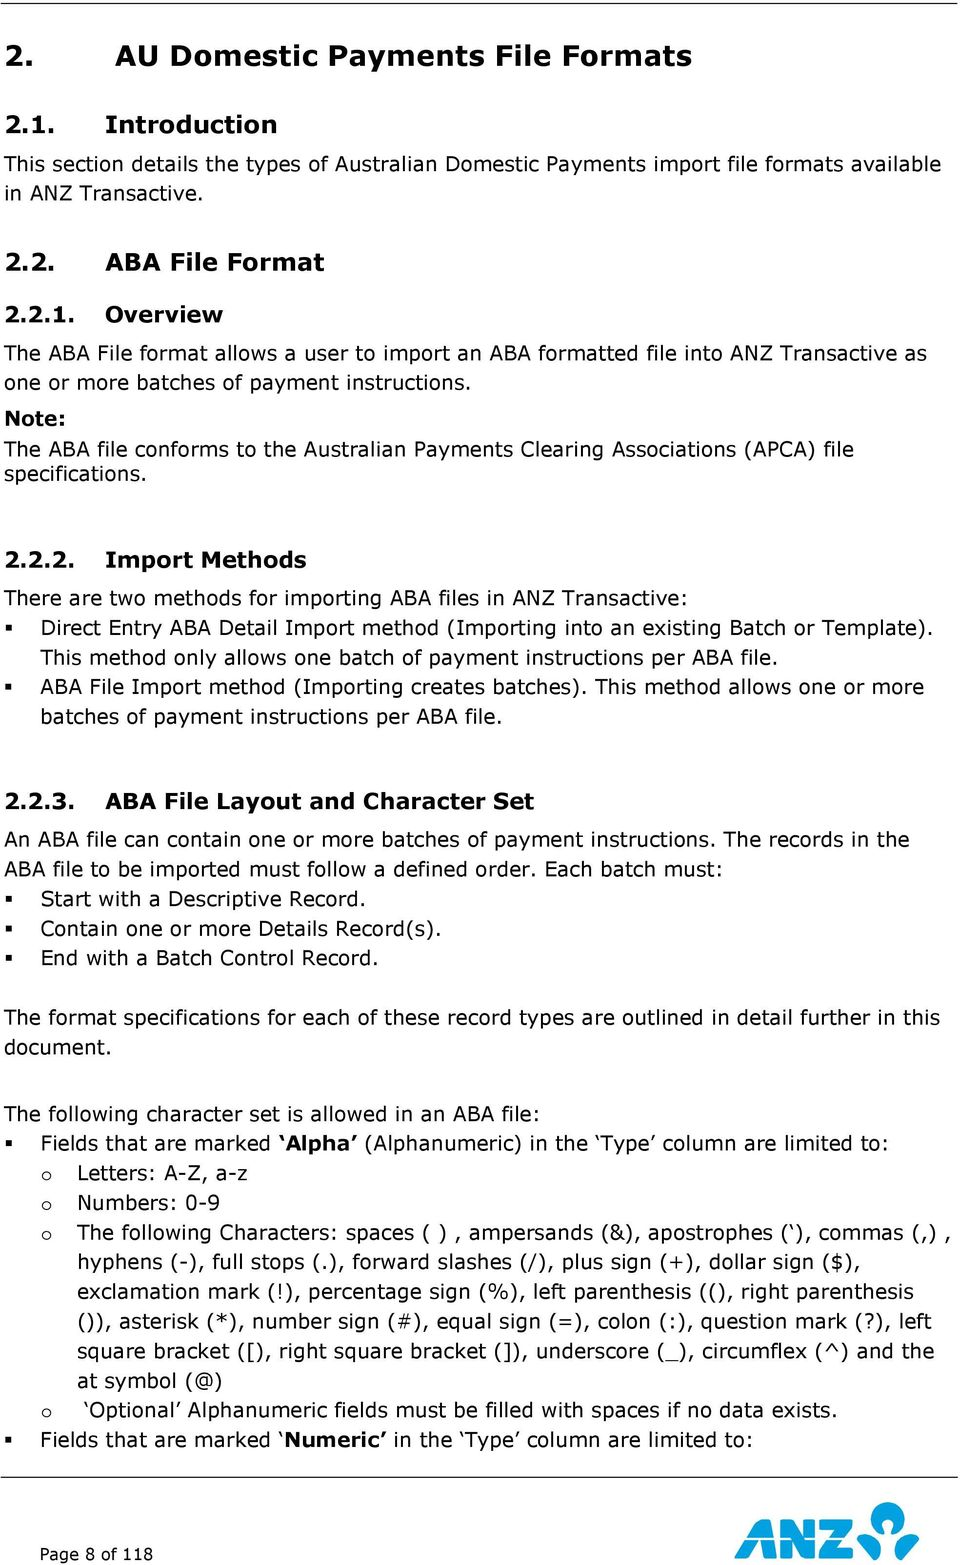 2.2. Import Methods There are two methods for importing ABA files in ANZ Transactive: Direct Entry ABA Detail Import method (Importing into an existing Batch or Template).